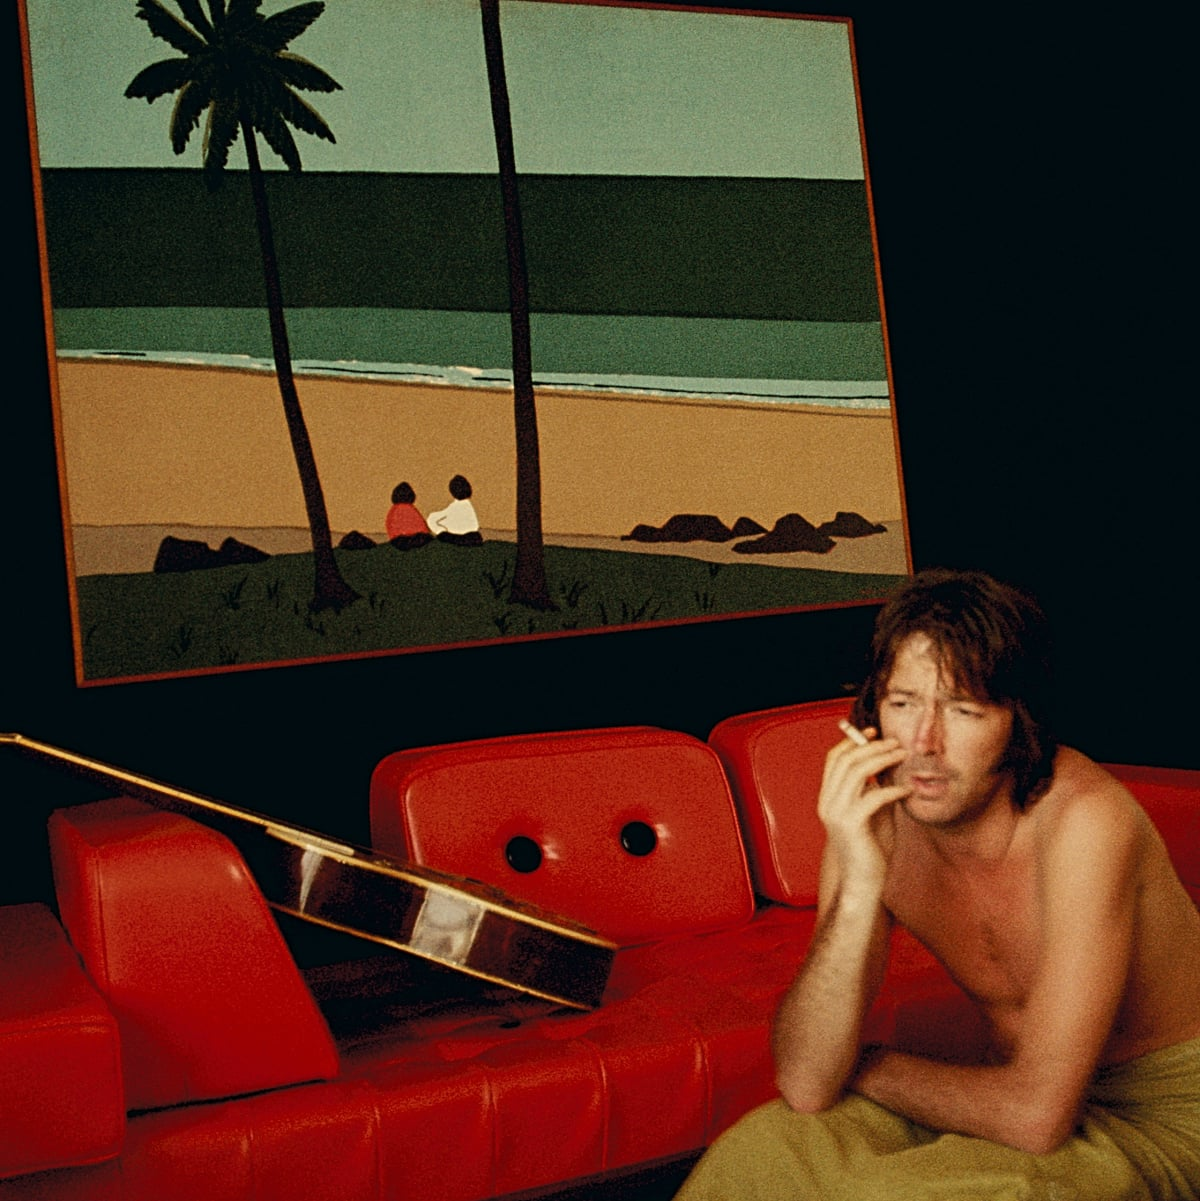 Eric Clapton, Another Hotel Room, Somewhere in the USA, 1974